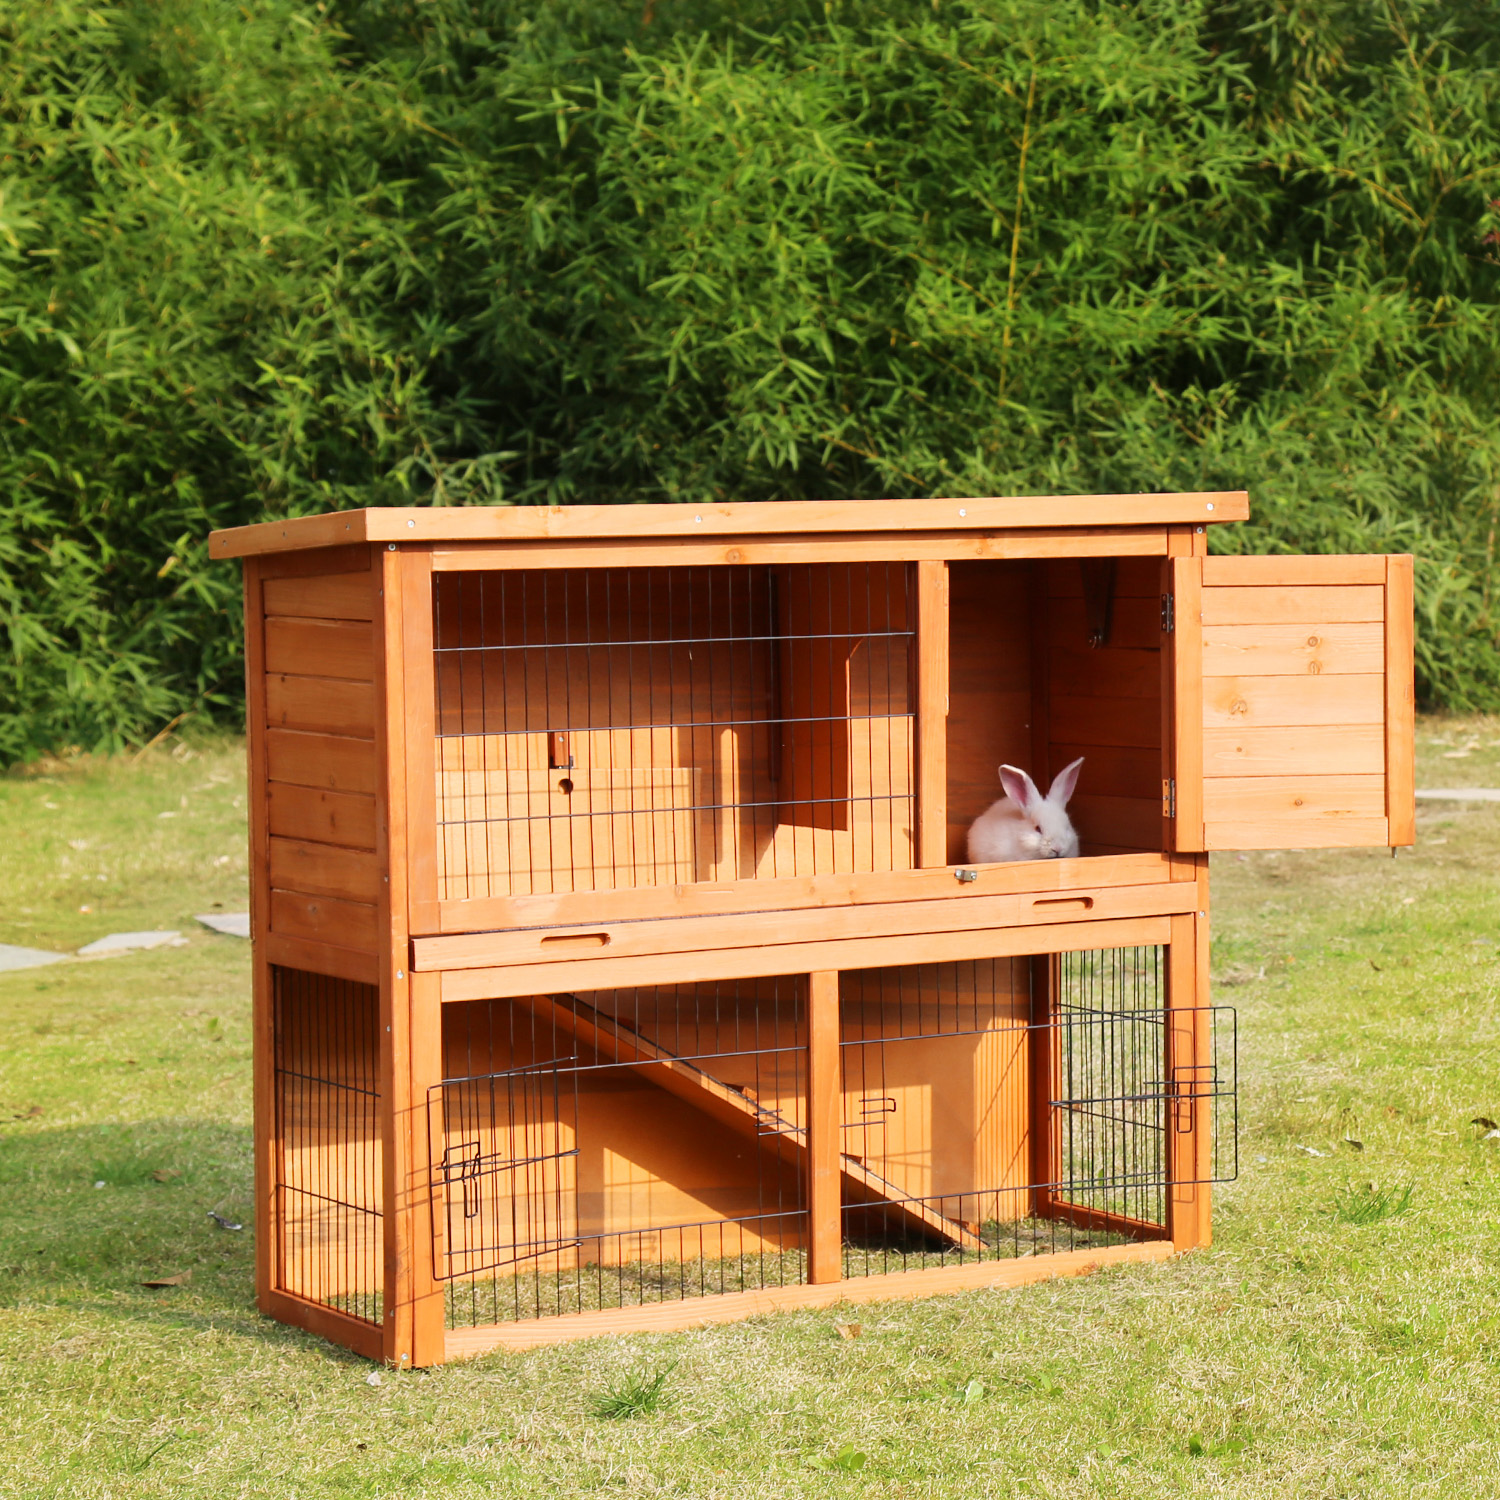 handmade for a pin advantek dp animals new and com house sale hutches amazon rabbit stilt home outdoor hutch ie decorated painted